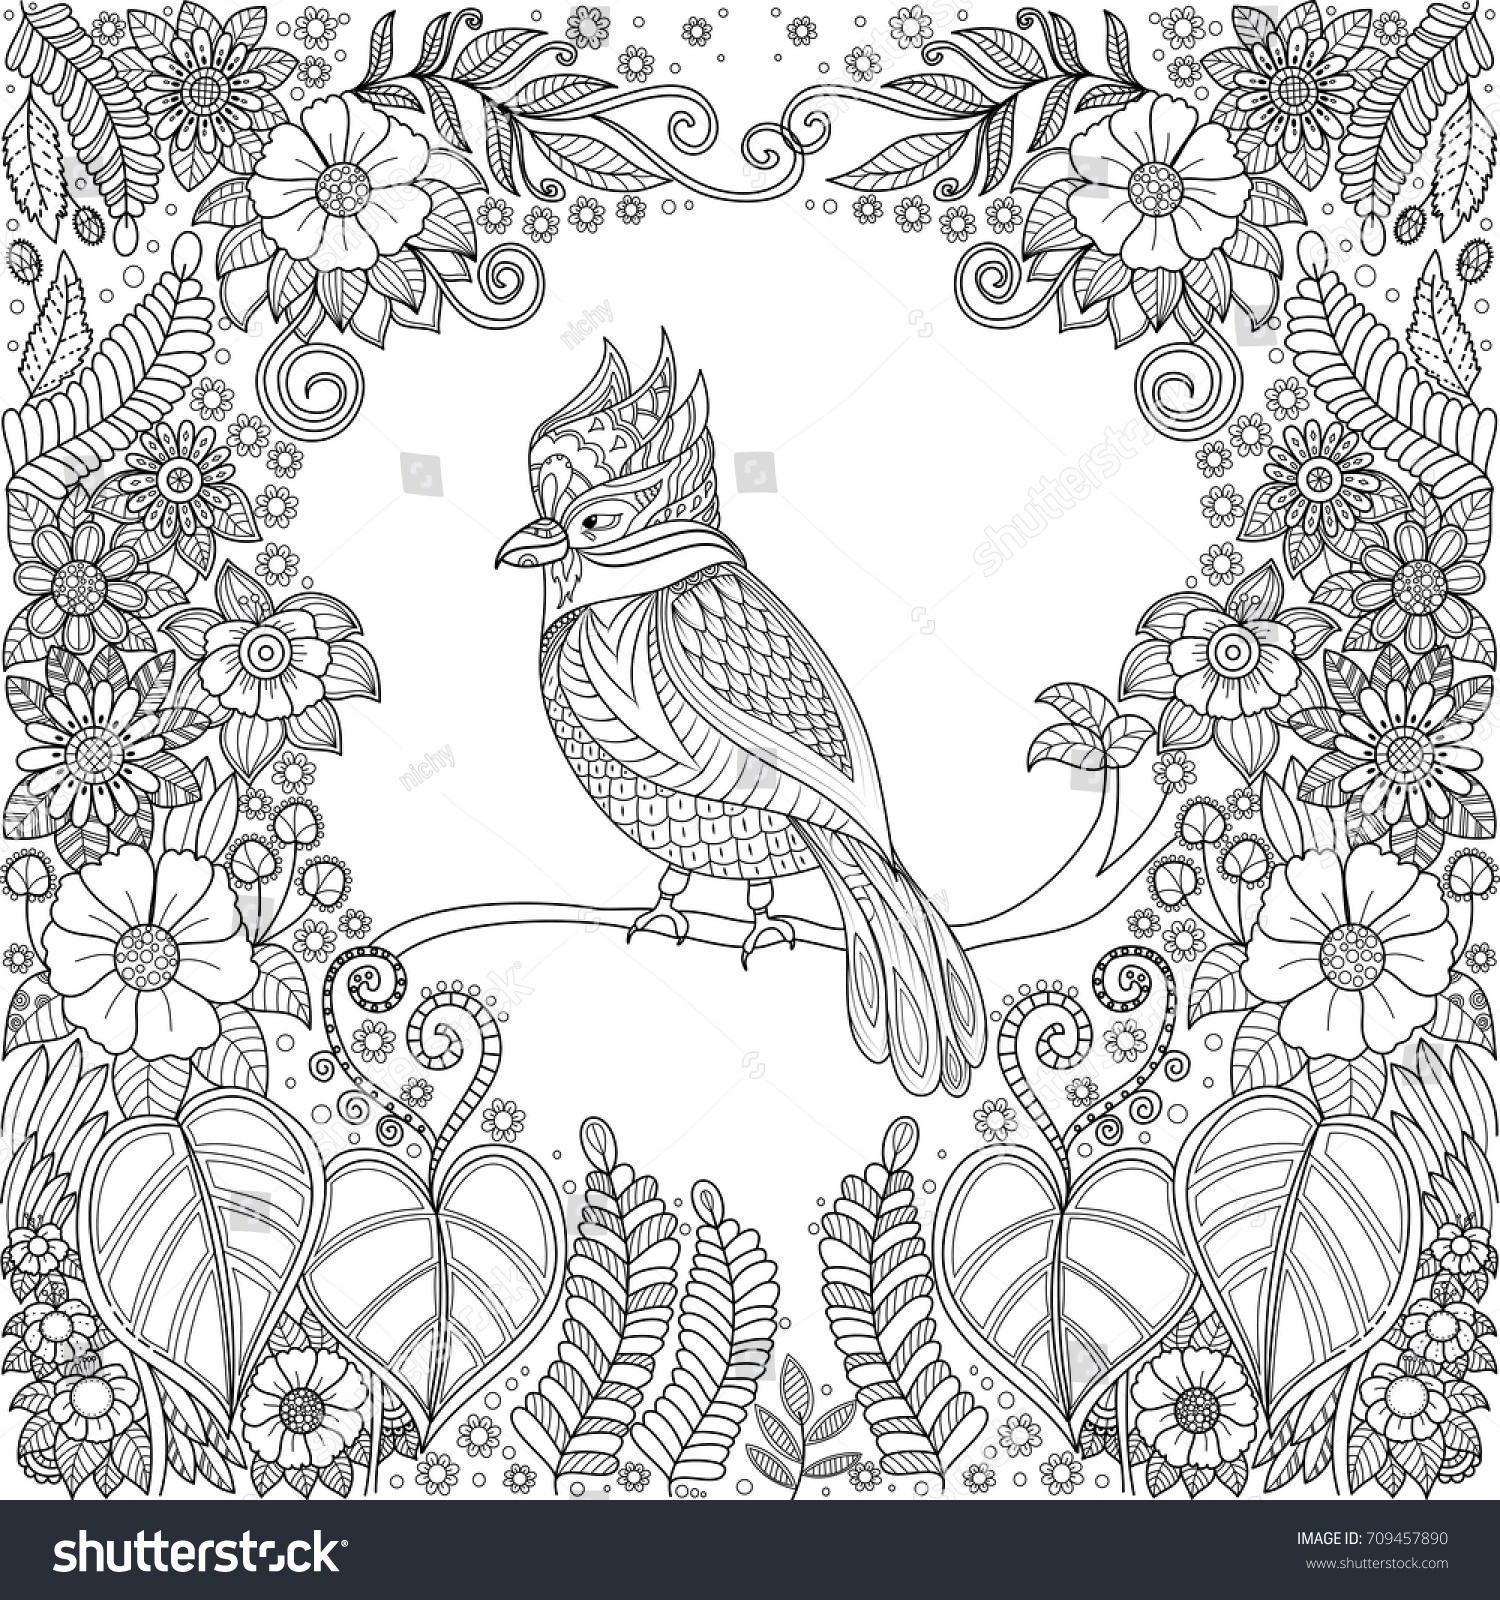 Tropical Bird Zentangle In Jungle With Flowers For Adult Coloring Book Pagevector Illustration